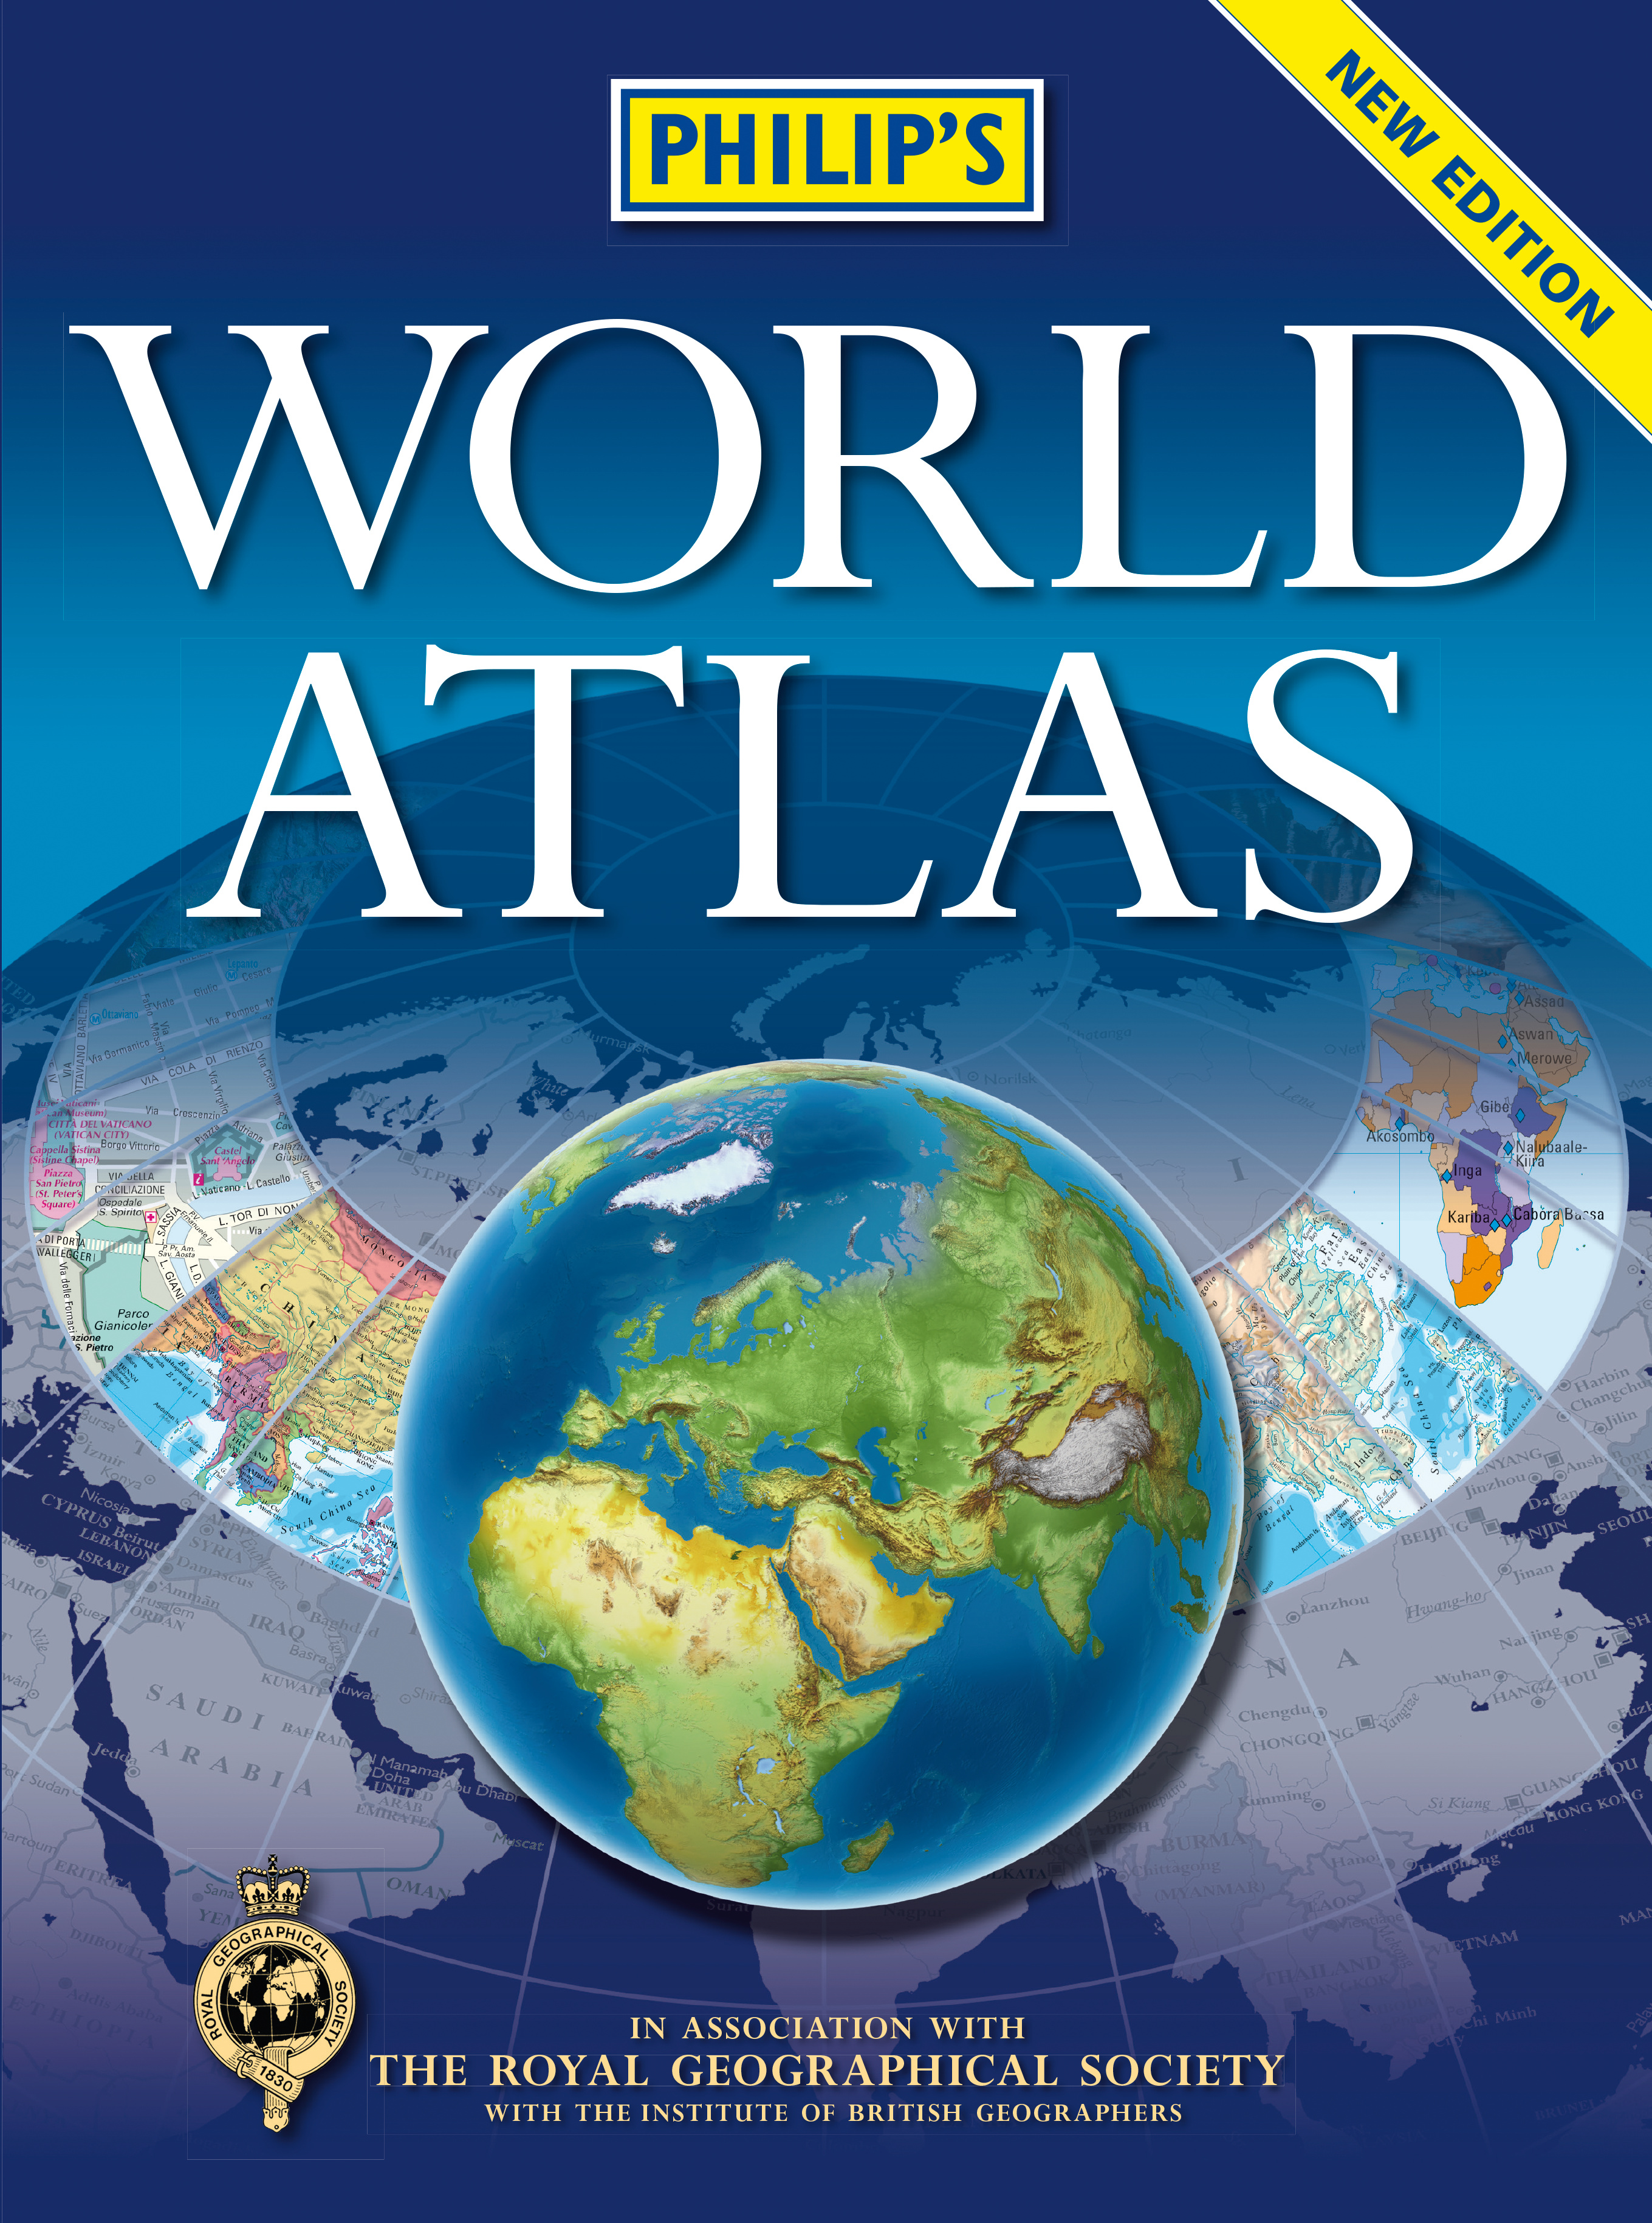 Philips world atlas paperback by philips maps books hachette books philips maps philips world atlas paperback download image download image gumiabroncs Choice Image